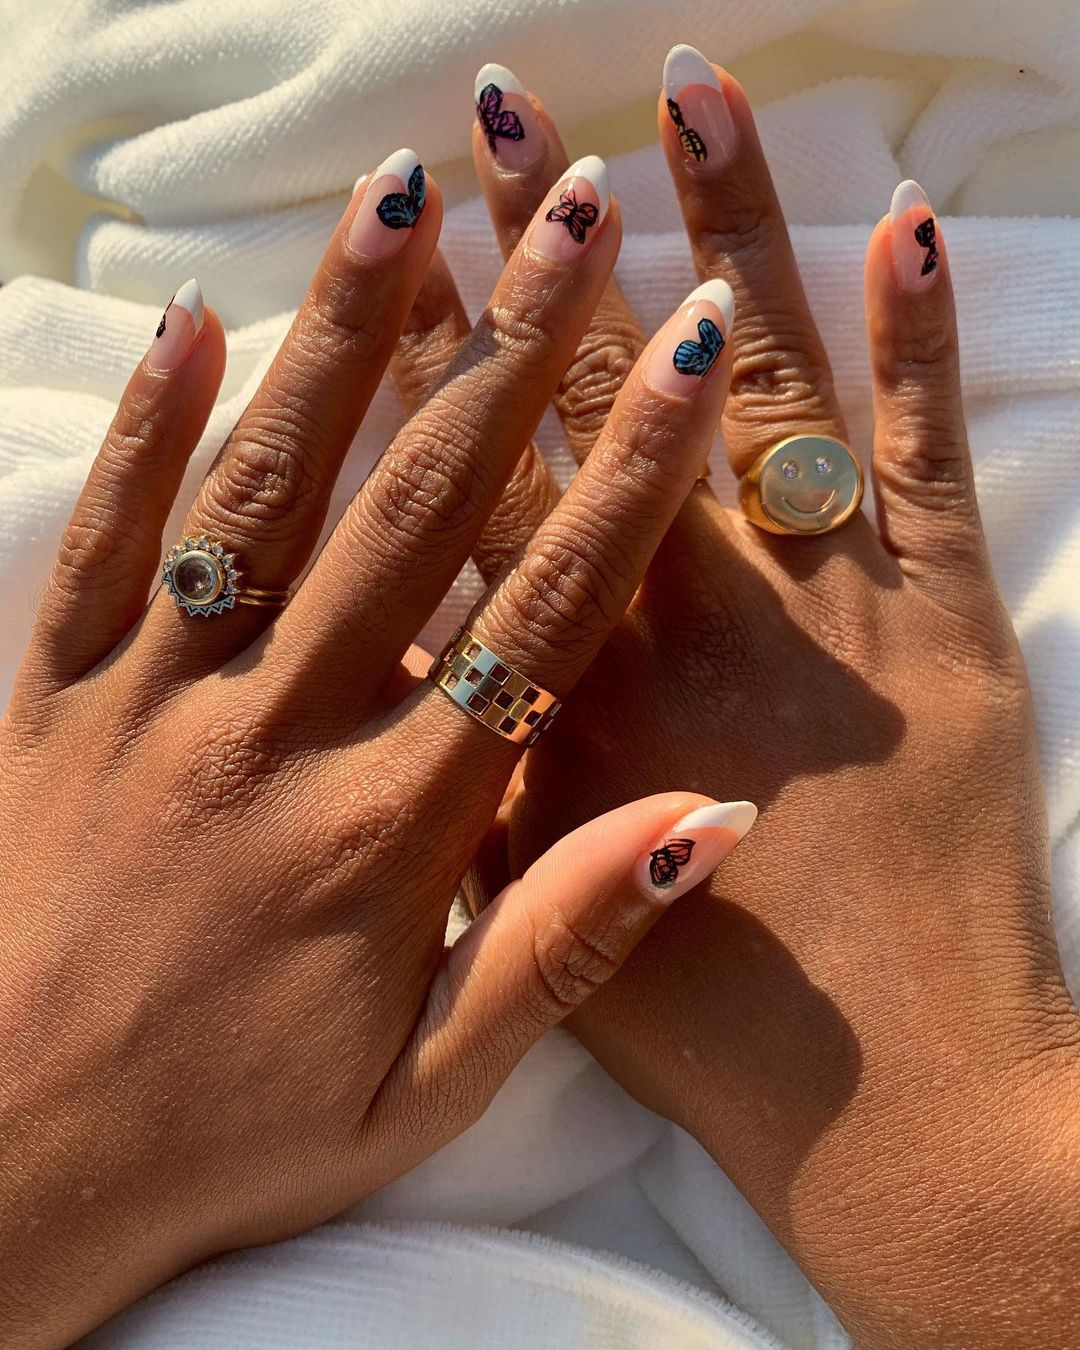 Butterfly Nail Trend by @evemeetsnails